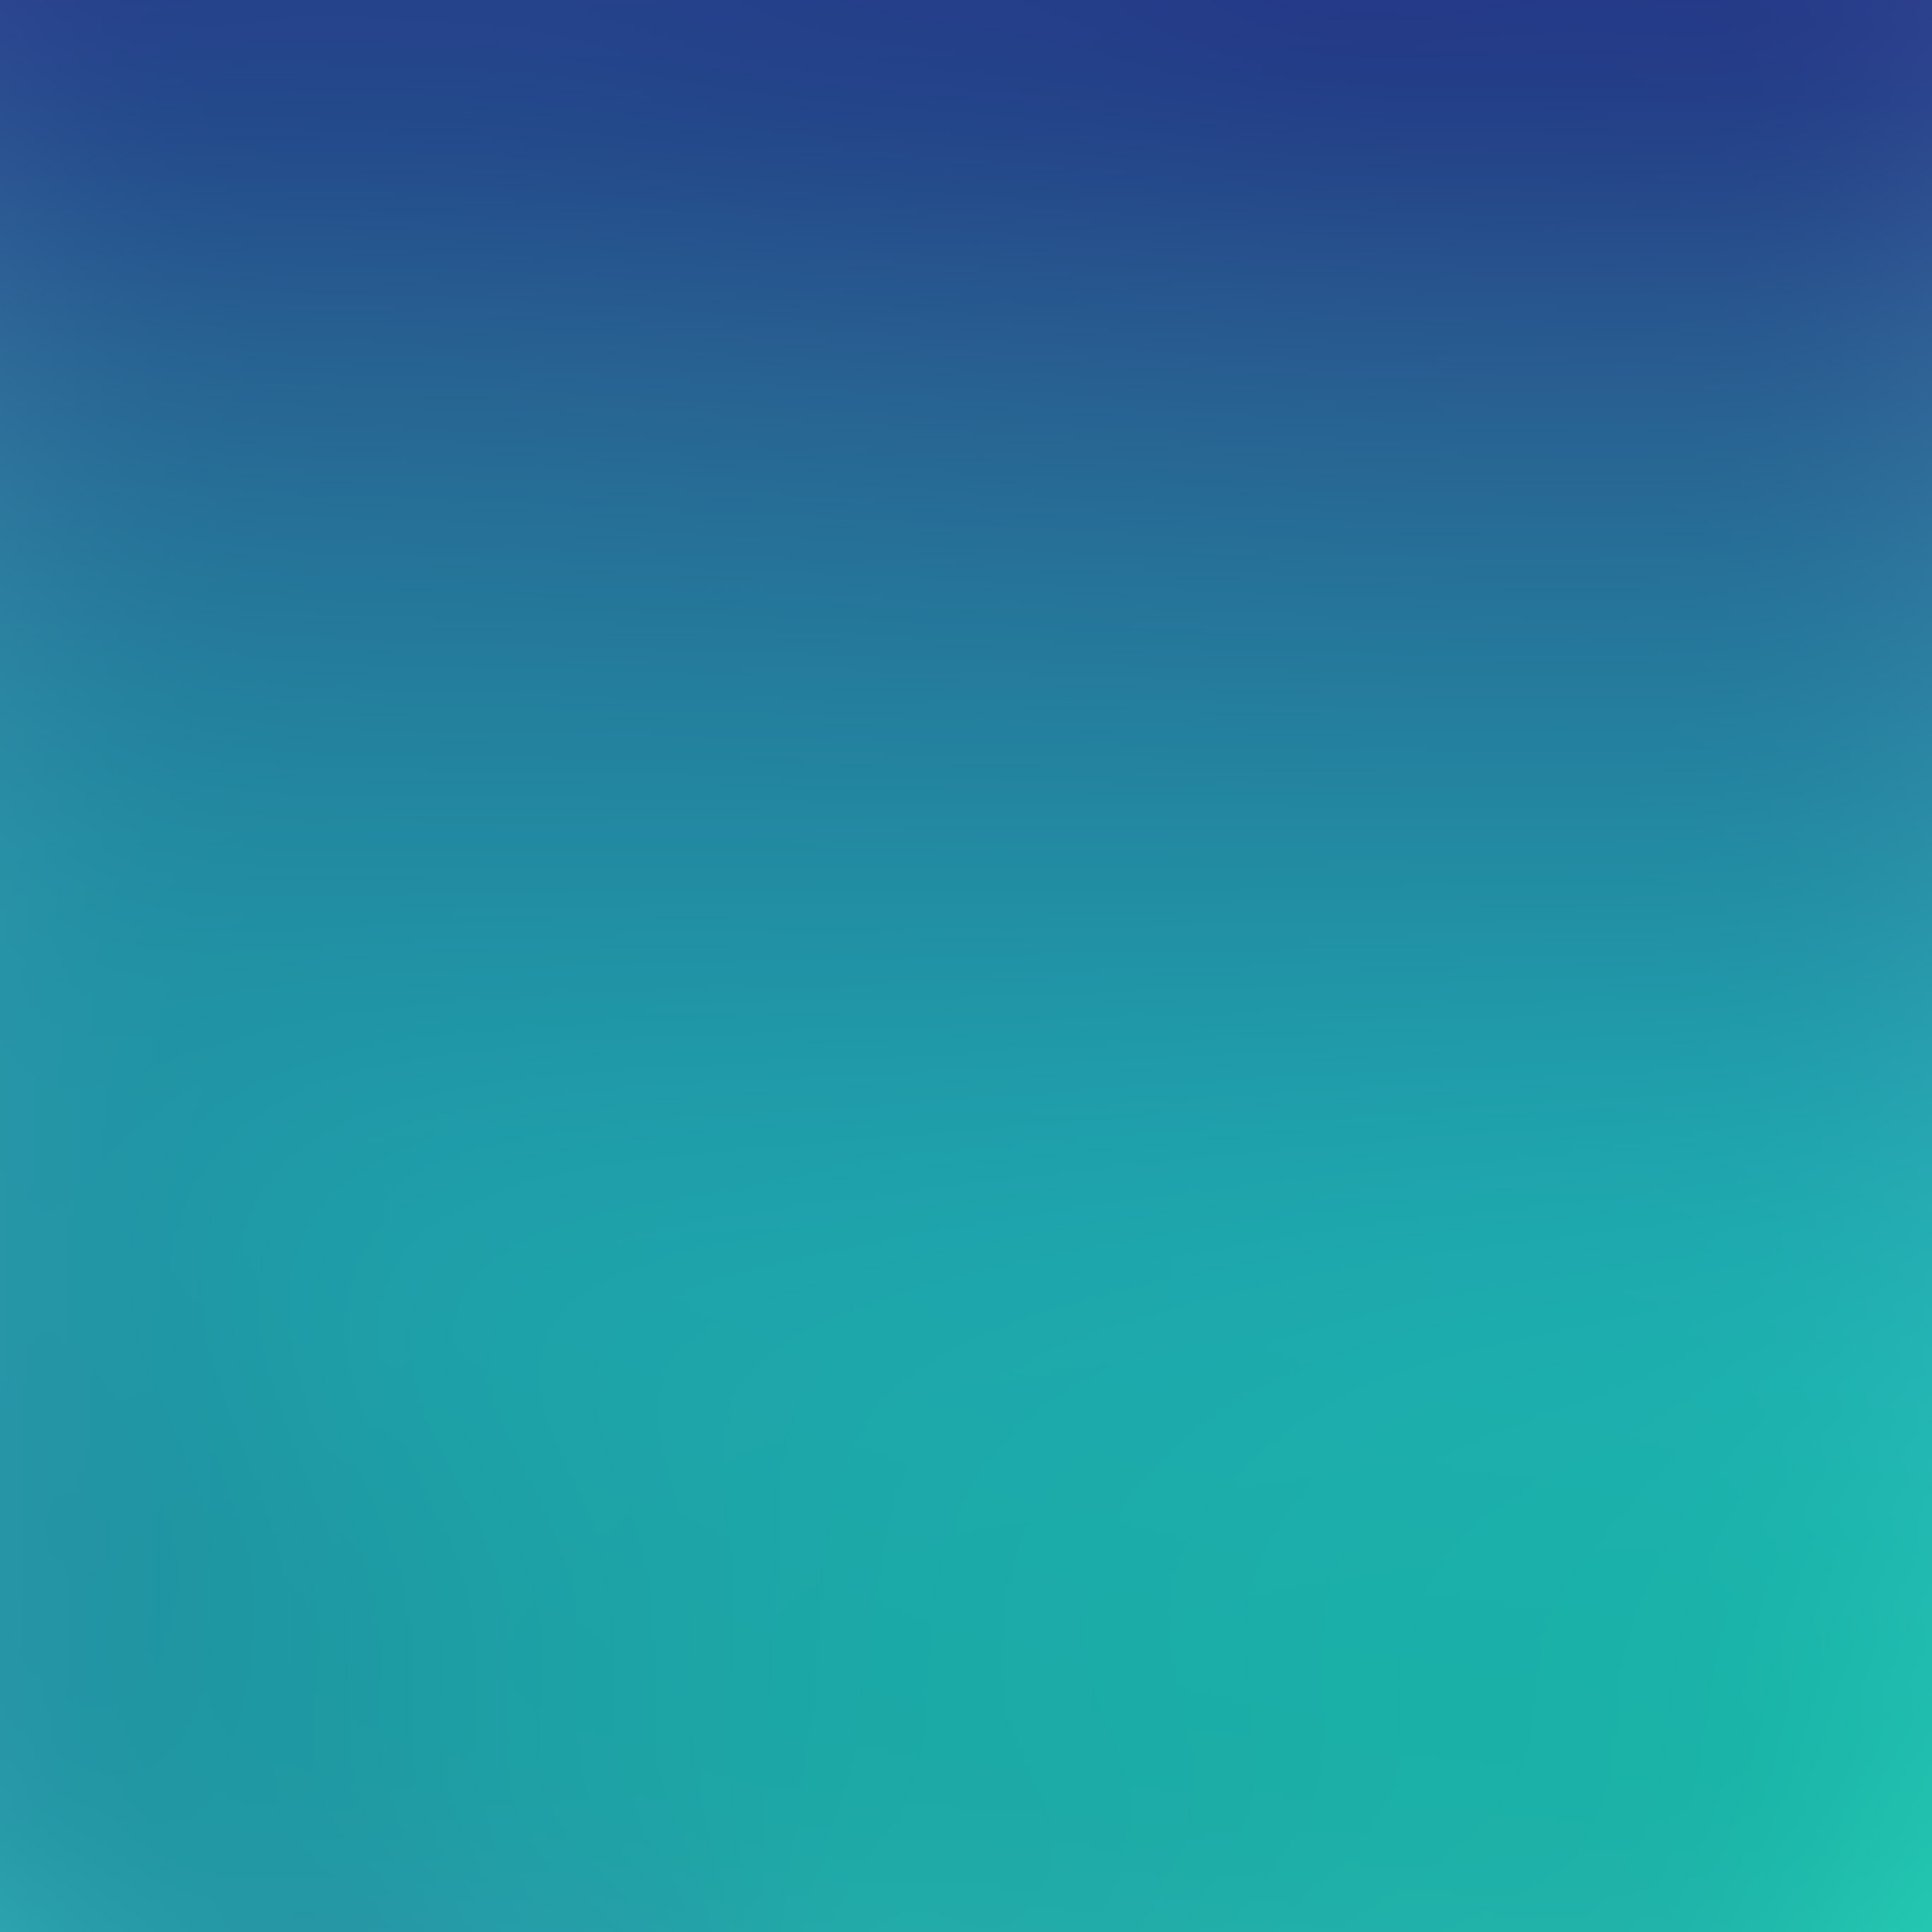 Fall Wallpaper Hd For Galaxy S4 Papers Co Android Wallpaper Si44 Blue Green Gradation Blur